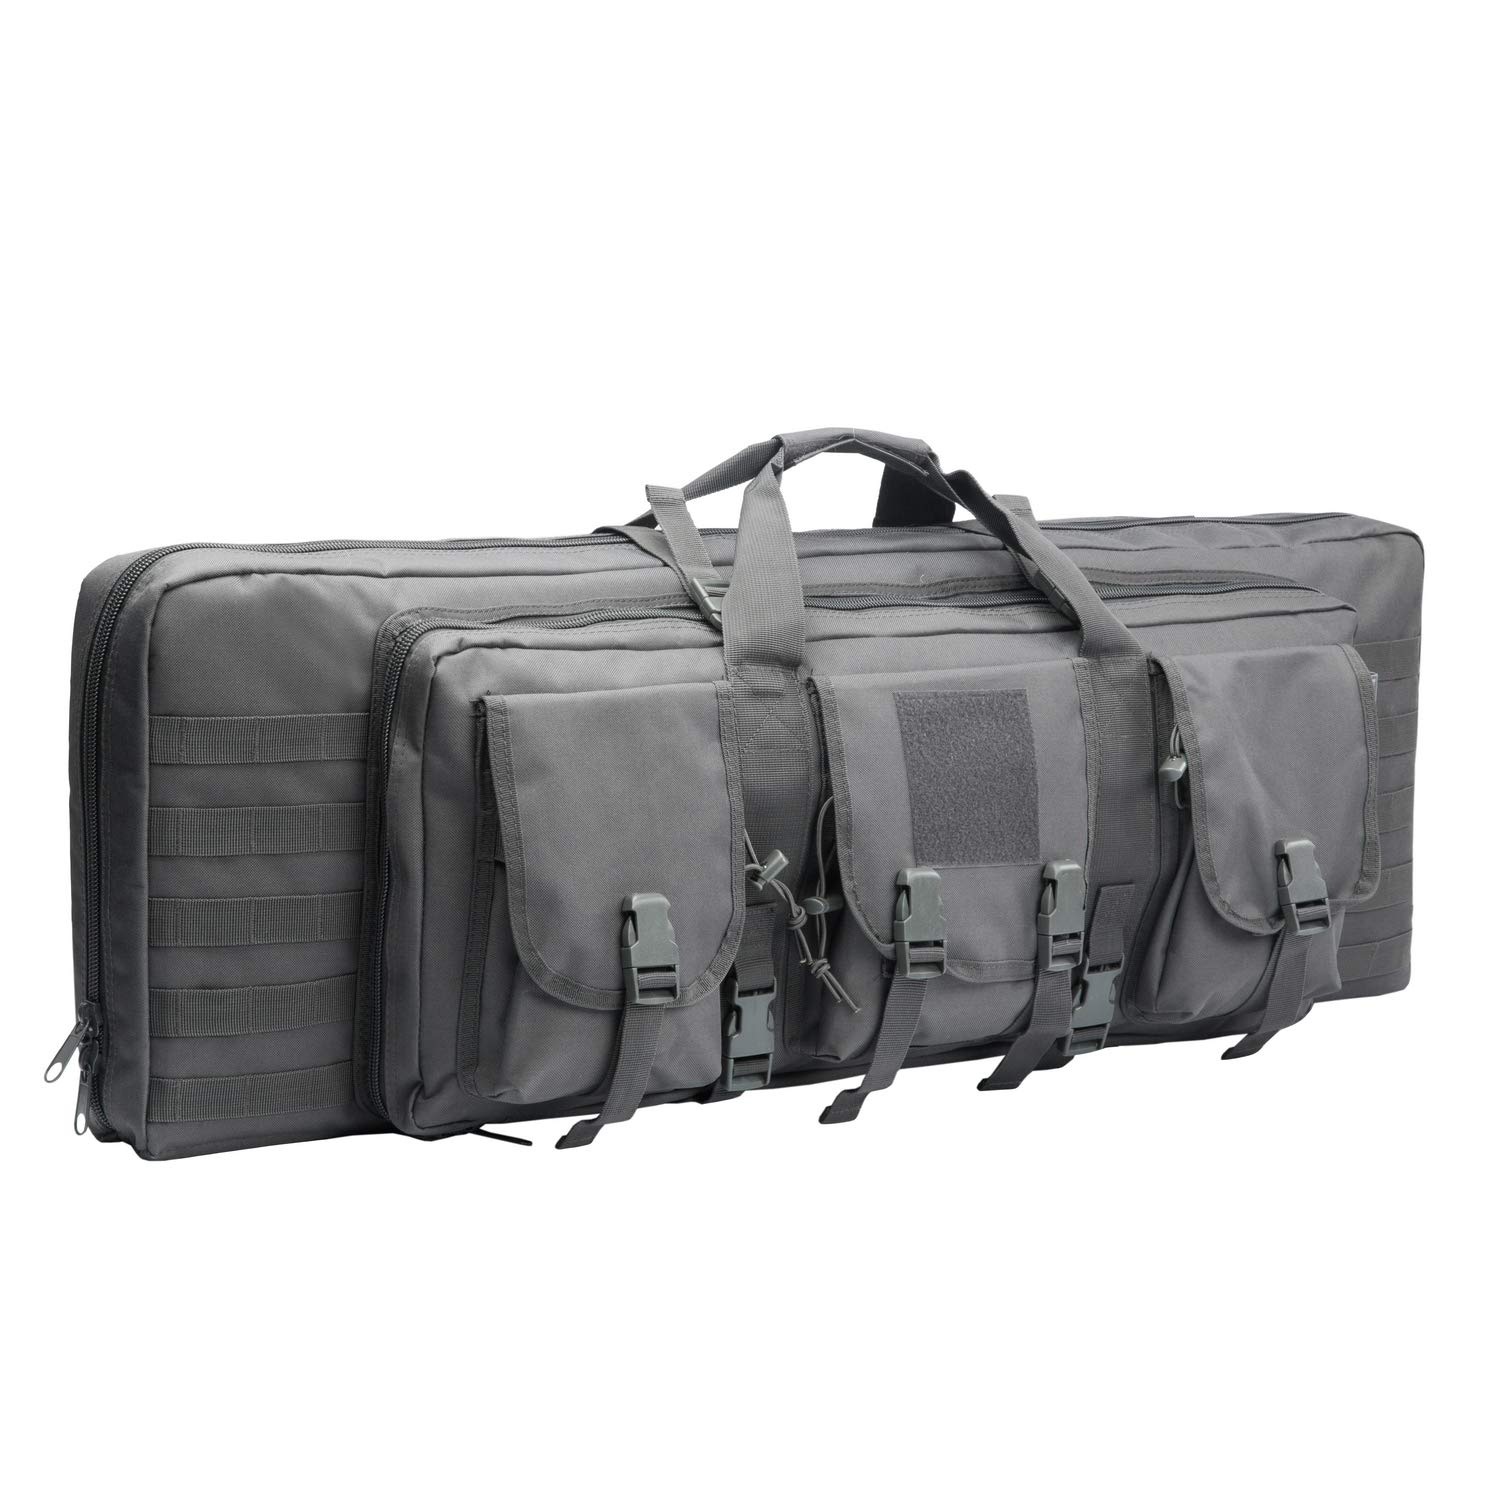 WolfWarriorX Double Long Rifle Gun Case Bag Tactical Carbine Cases Water Dust Resistant Firearm Shotgun Bag Outdoor MOLLE Hunting Shooting Storage Transport, Available in 38'' 42'' (Gray, 42inch) by WolfWarriorX